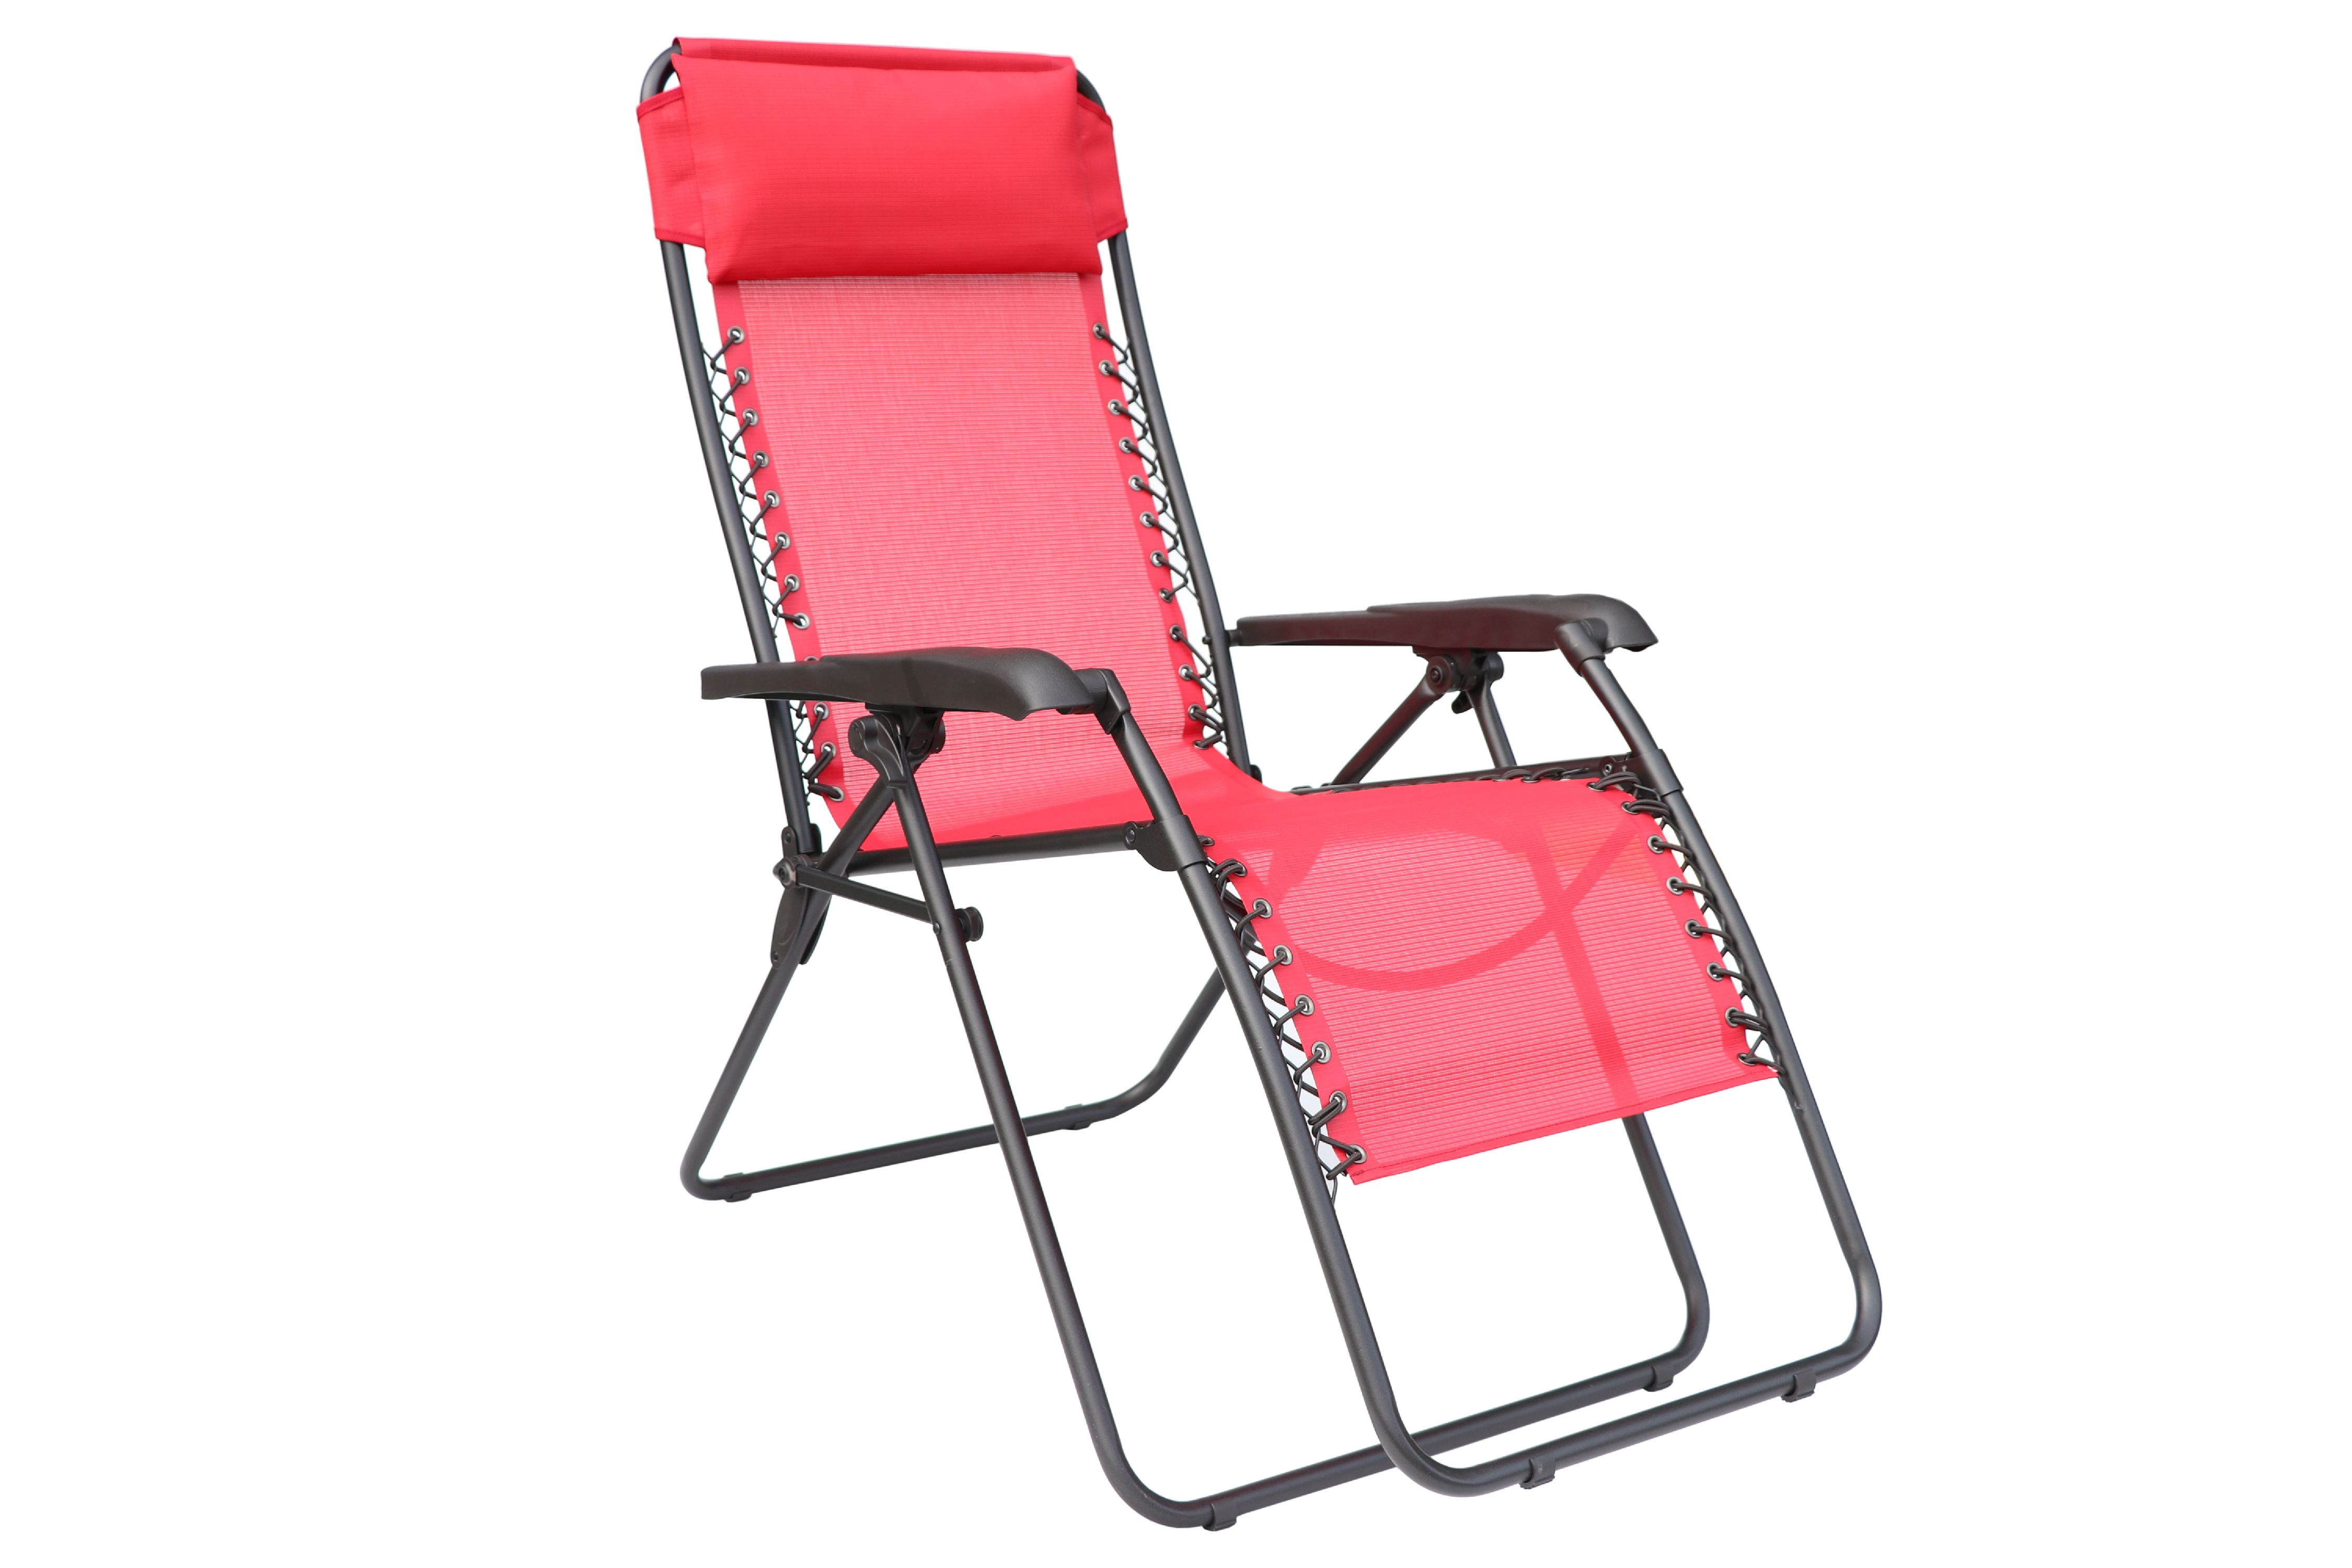 plastic patio chairs. Mainstays Outdoor Folding Bungee Lounger, Red Sling Plastic Patio Chairs